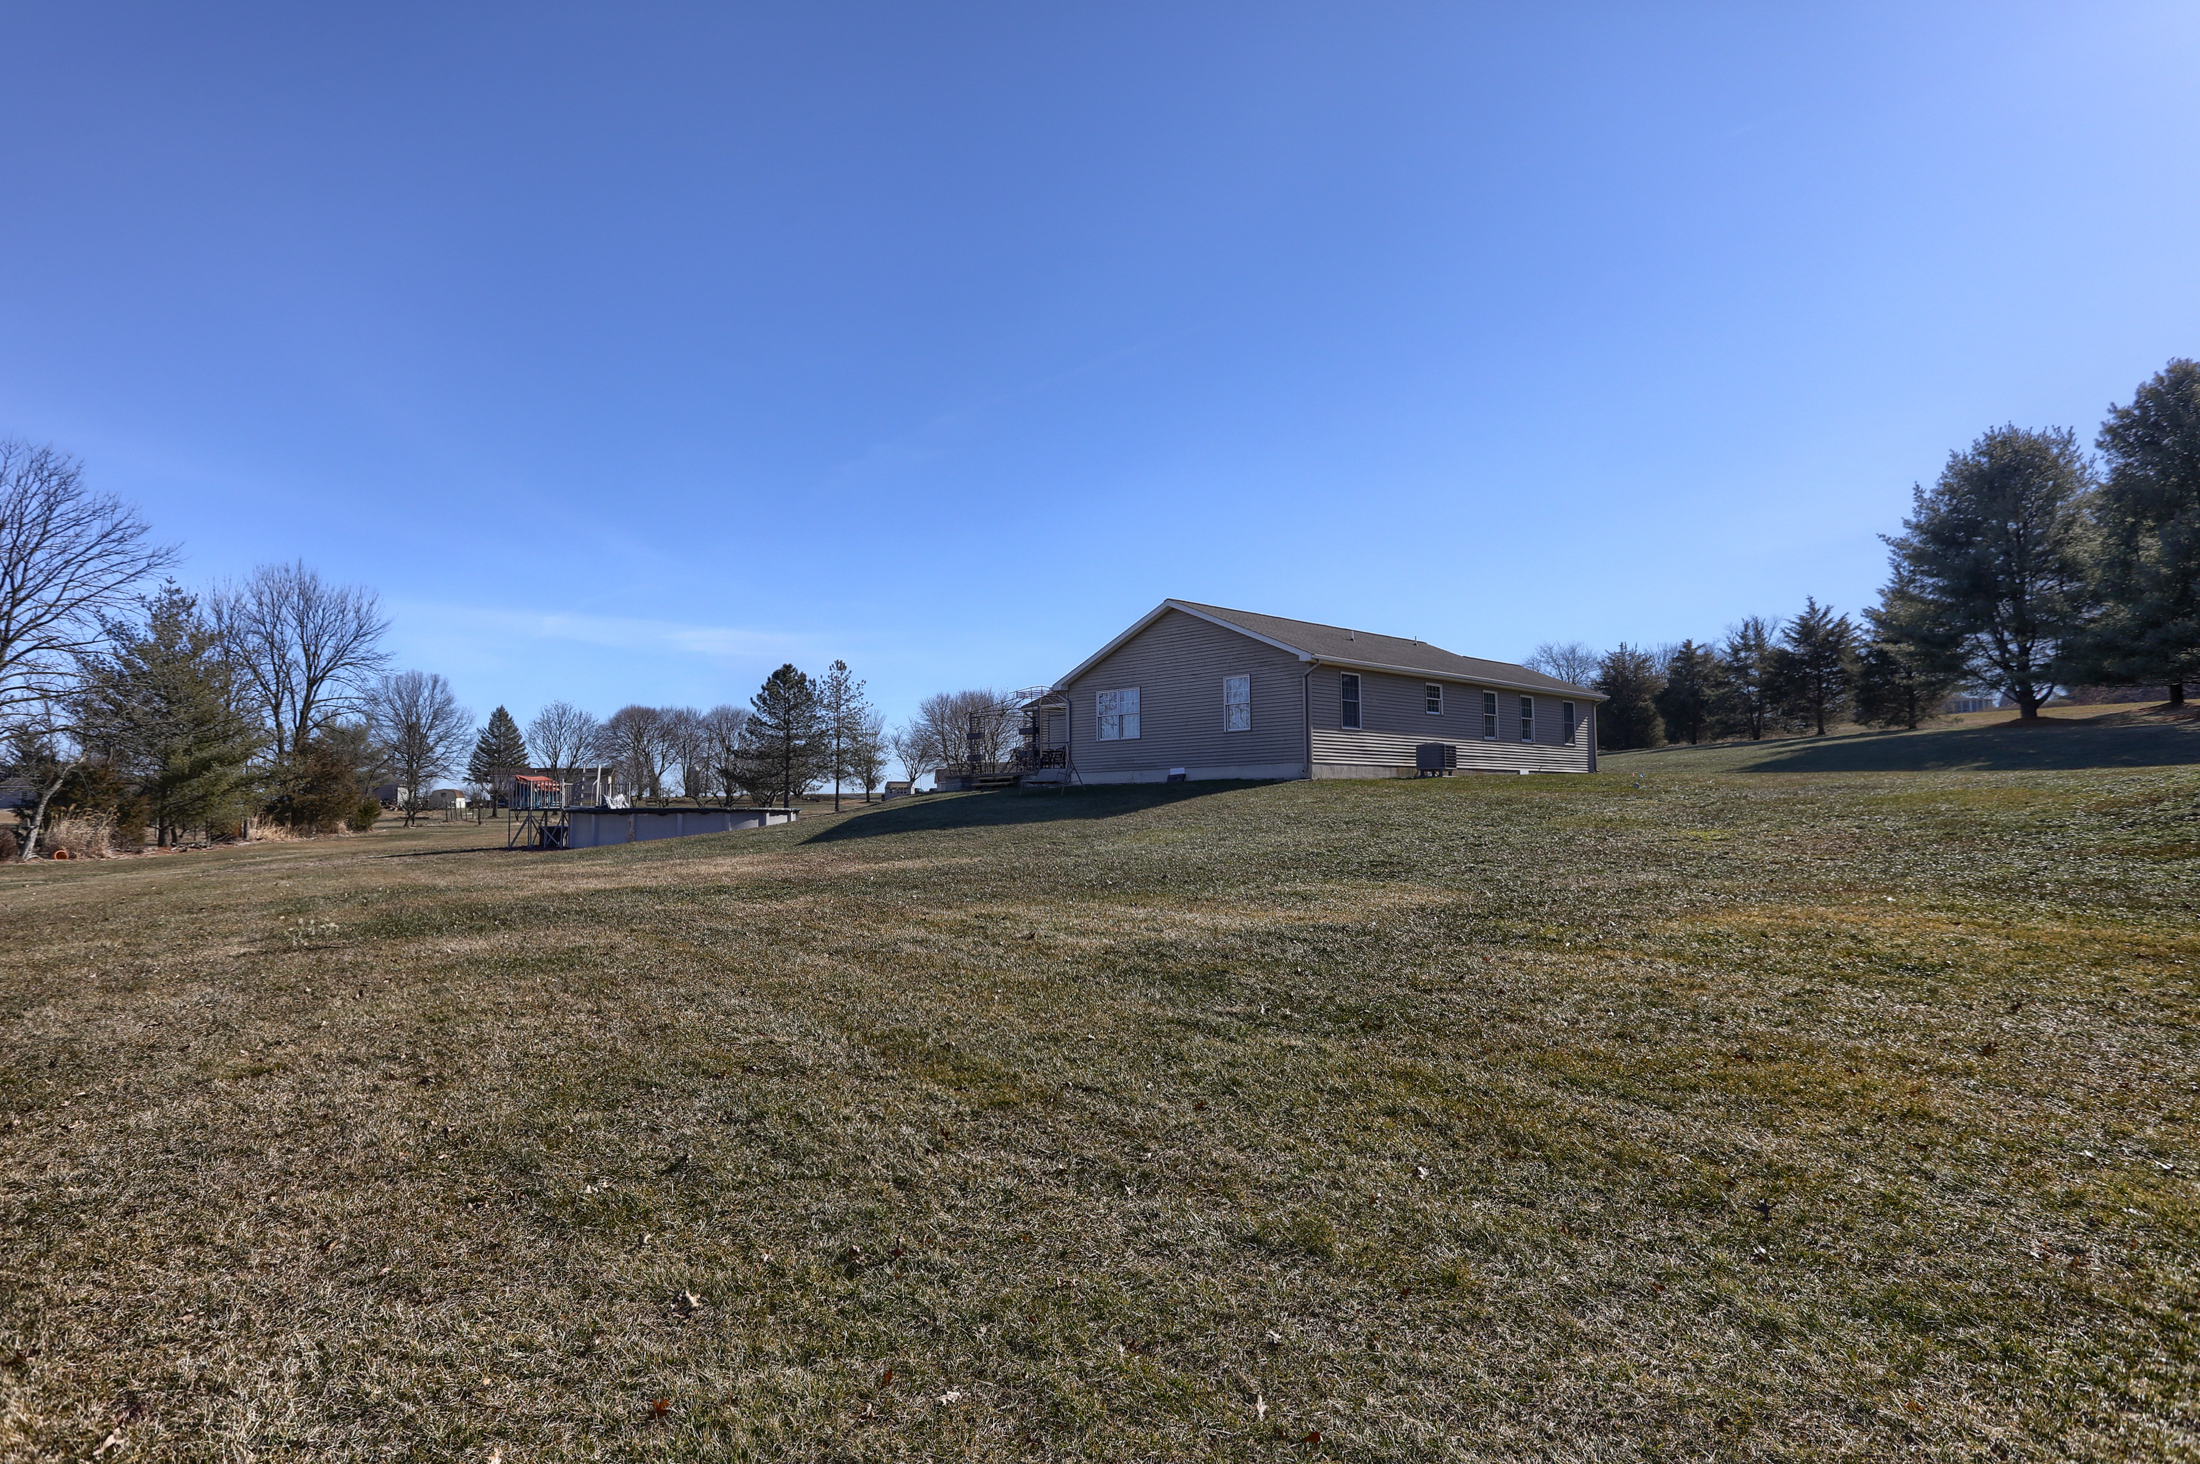 26 W. Strack Drive - yard (ELCO home with land)